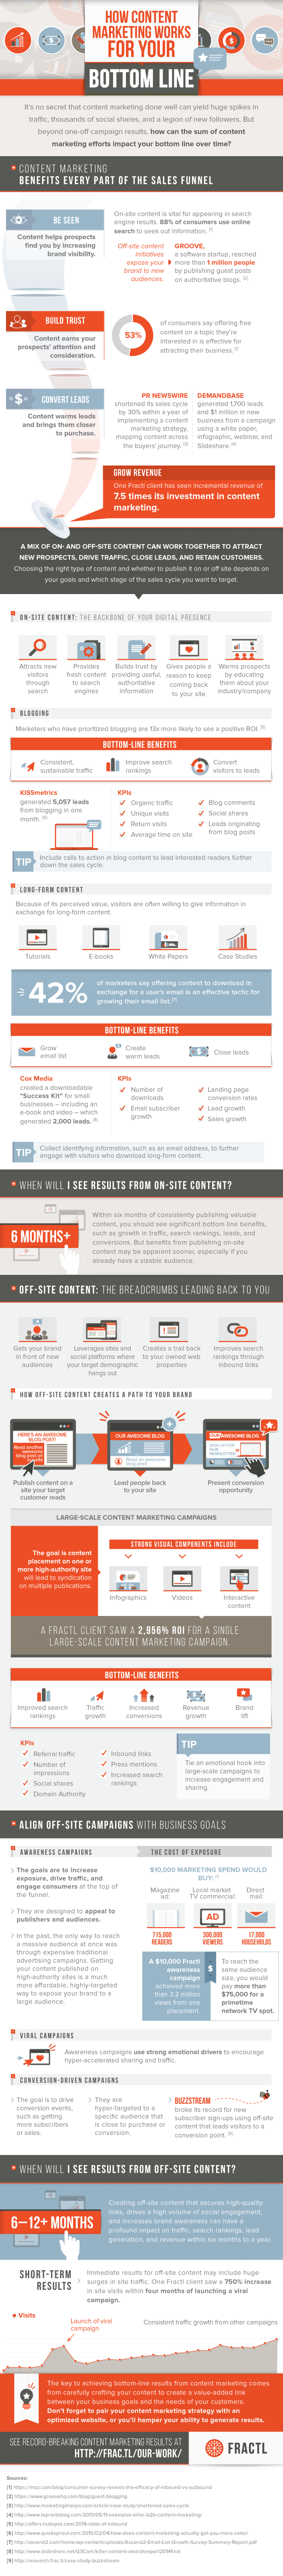 Infographie 240 - Content and business leads